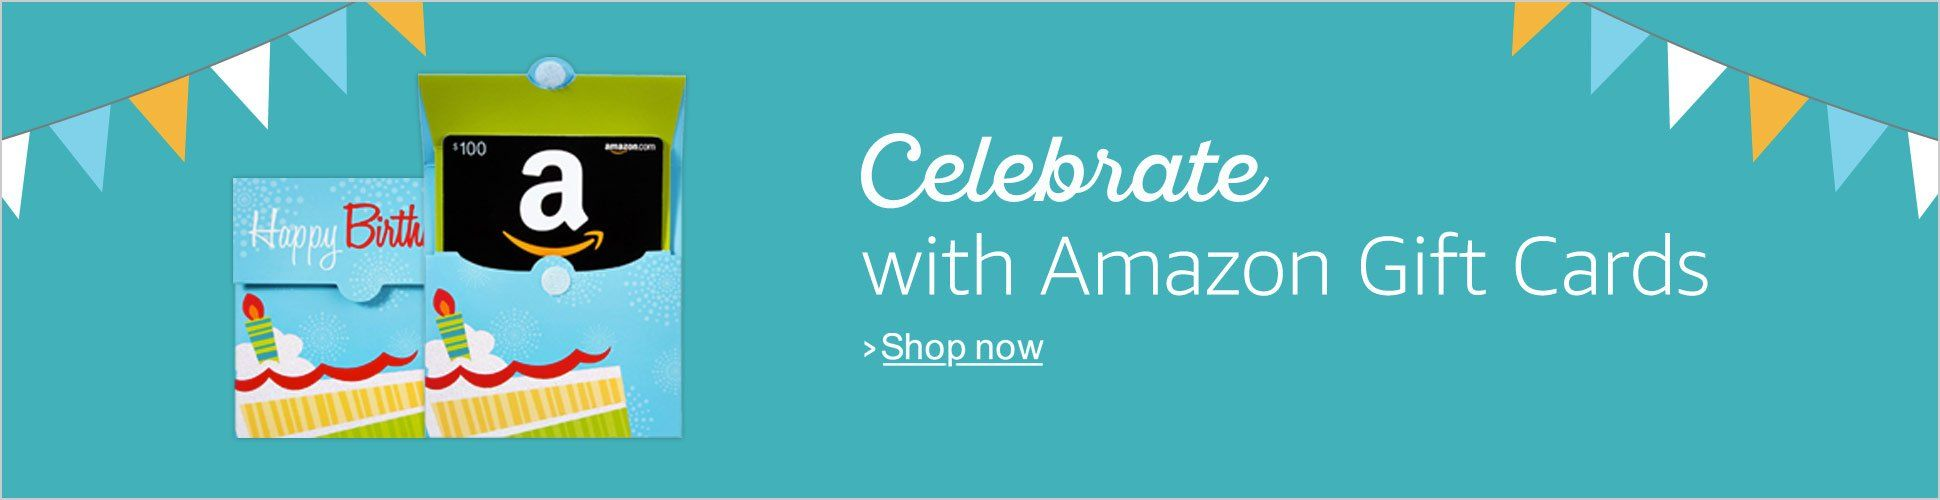 Amazon Com Gift Cards Gifts Gift Card Shop Gift Card